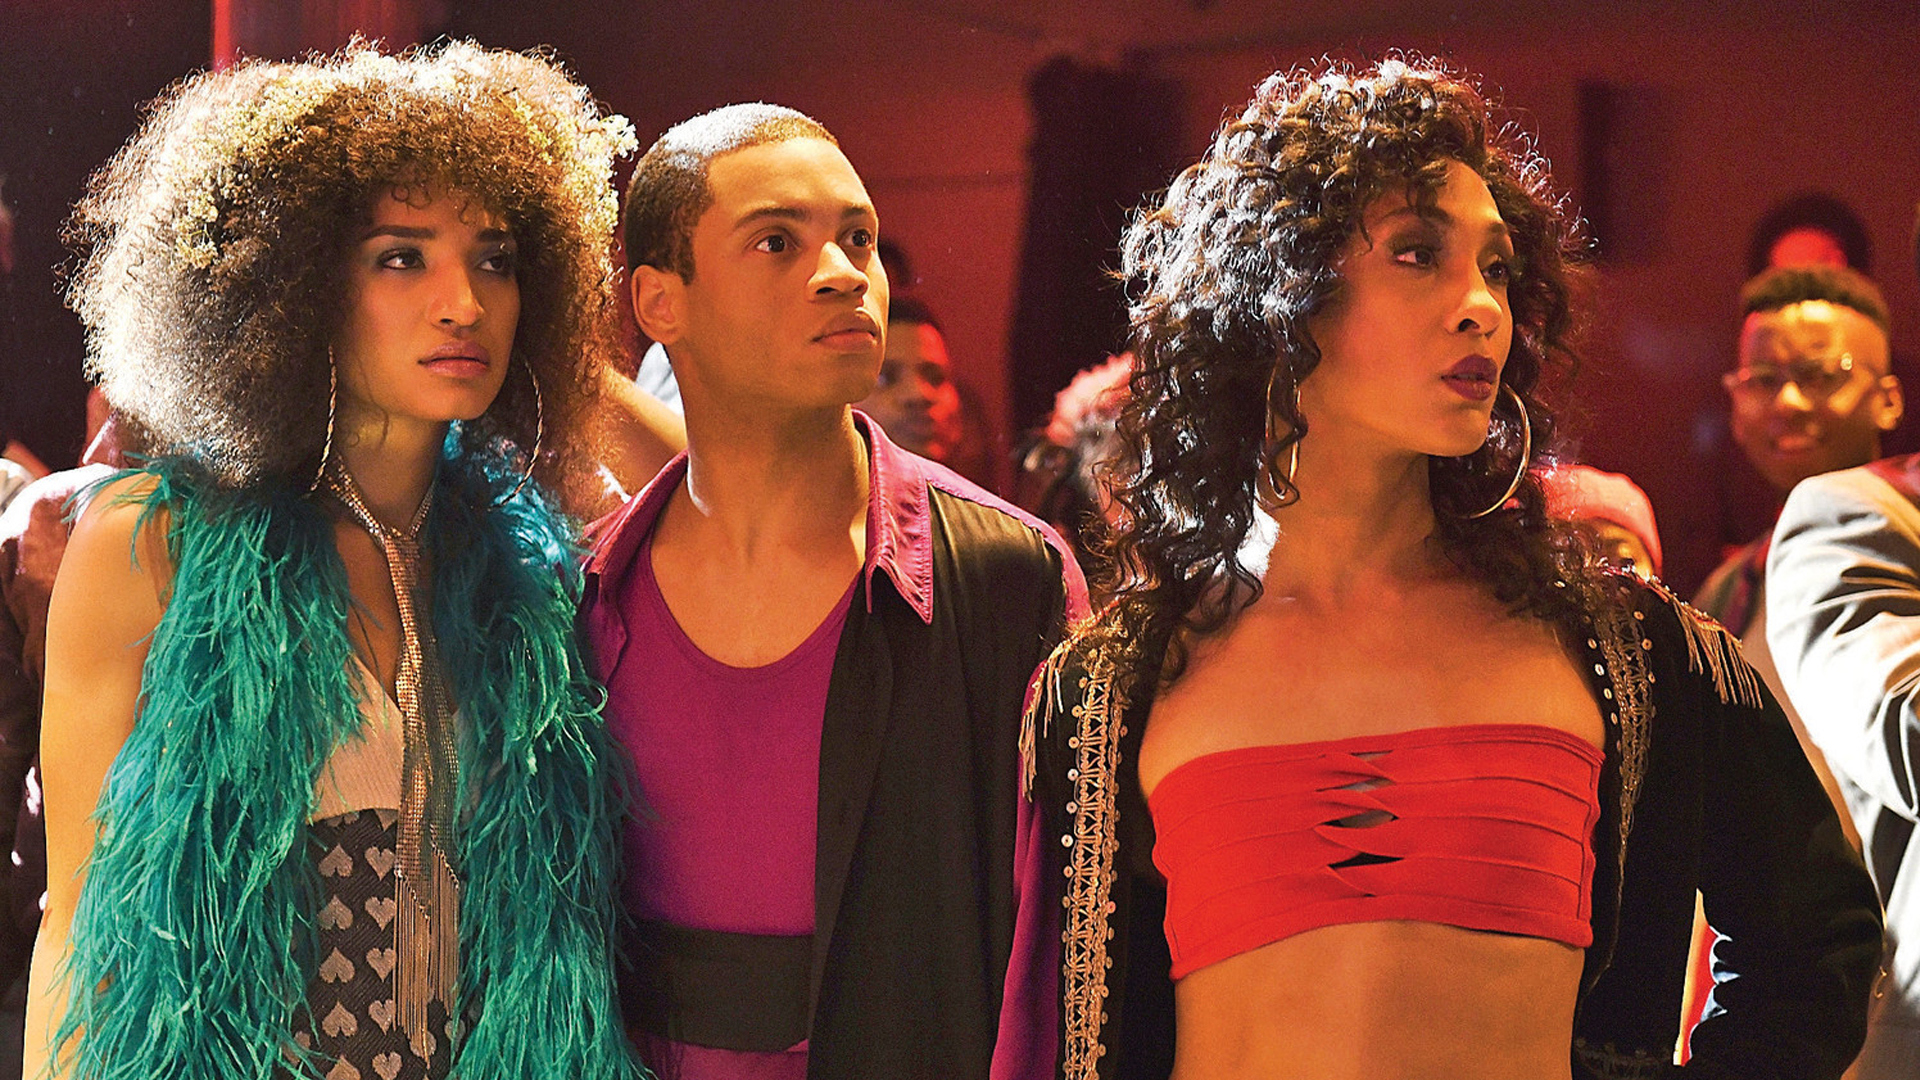 vice.com - Connor Garel - 'Pose' is the Most Important Show on TV Right Now